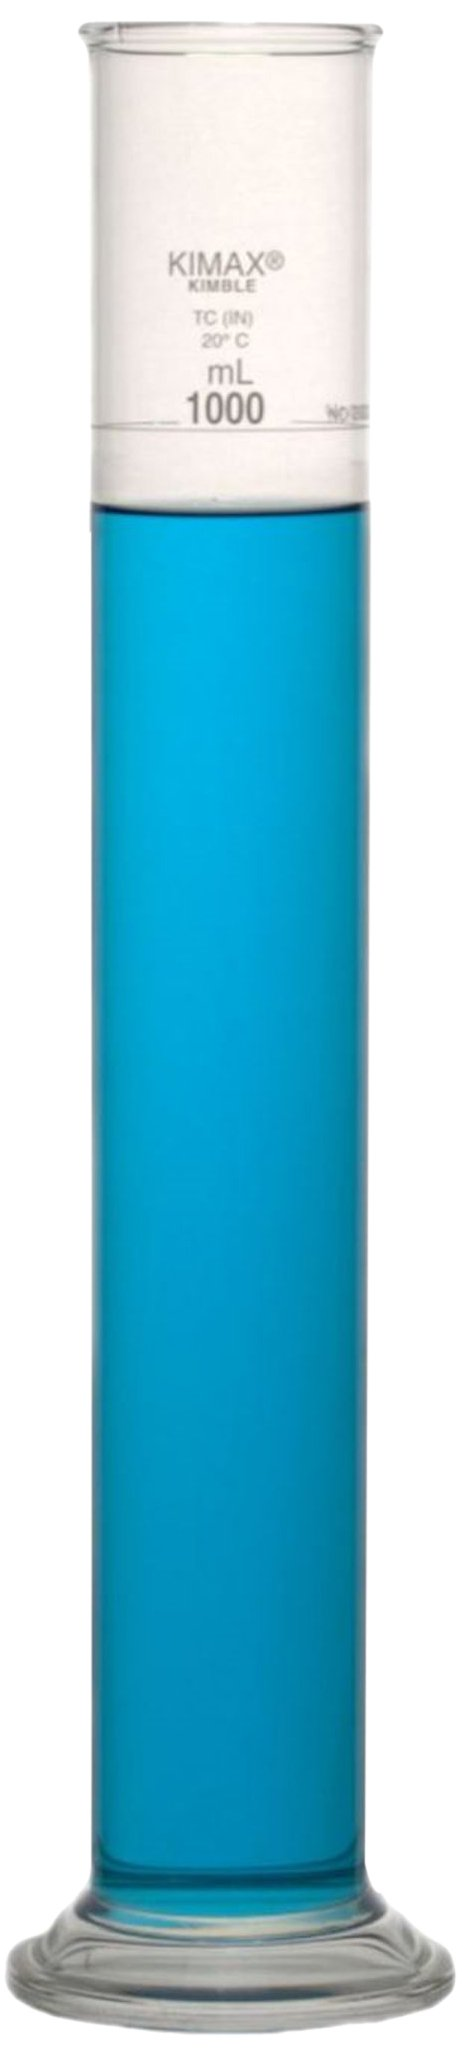 Kimble 20023-1000 Borosilicate Glass Soil Testing Cylinder, 1L Capacity by Kimble